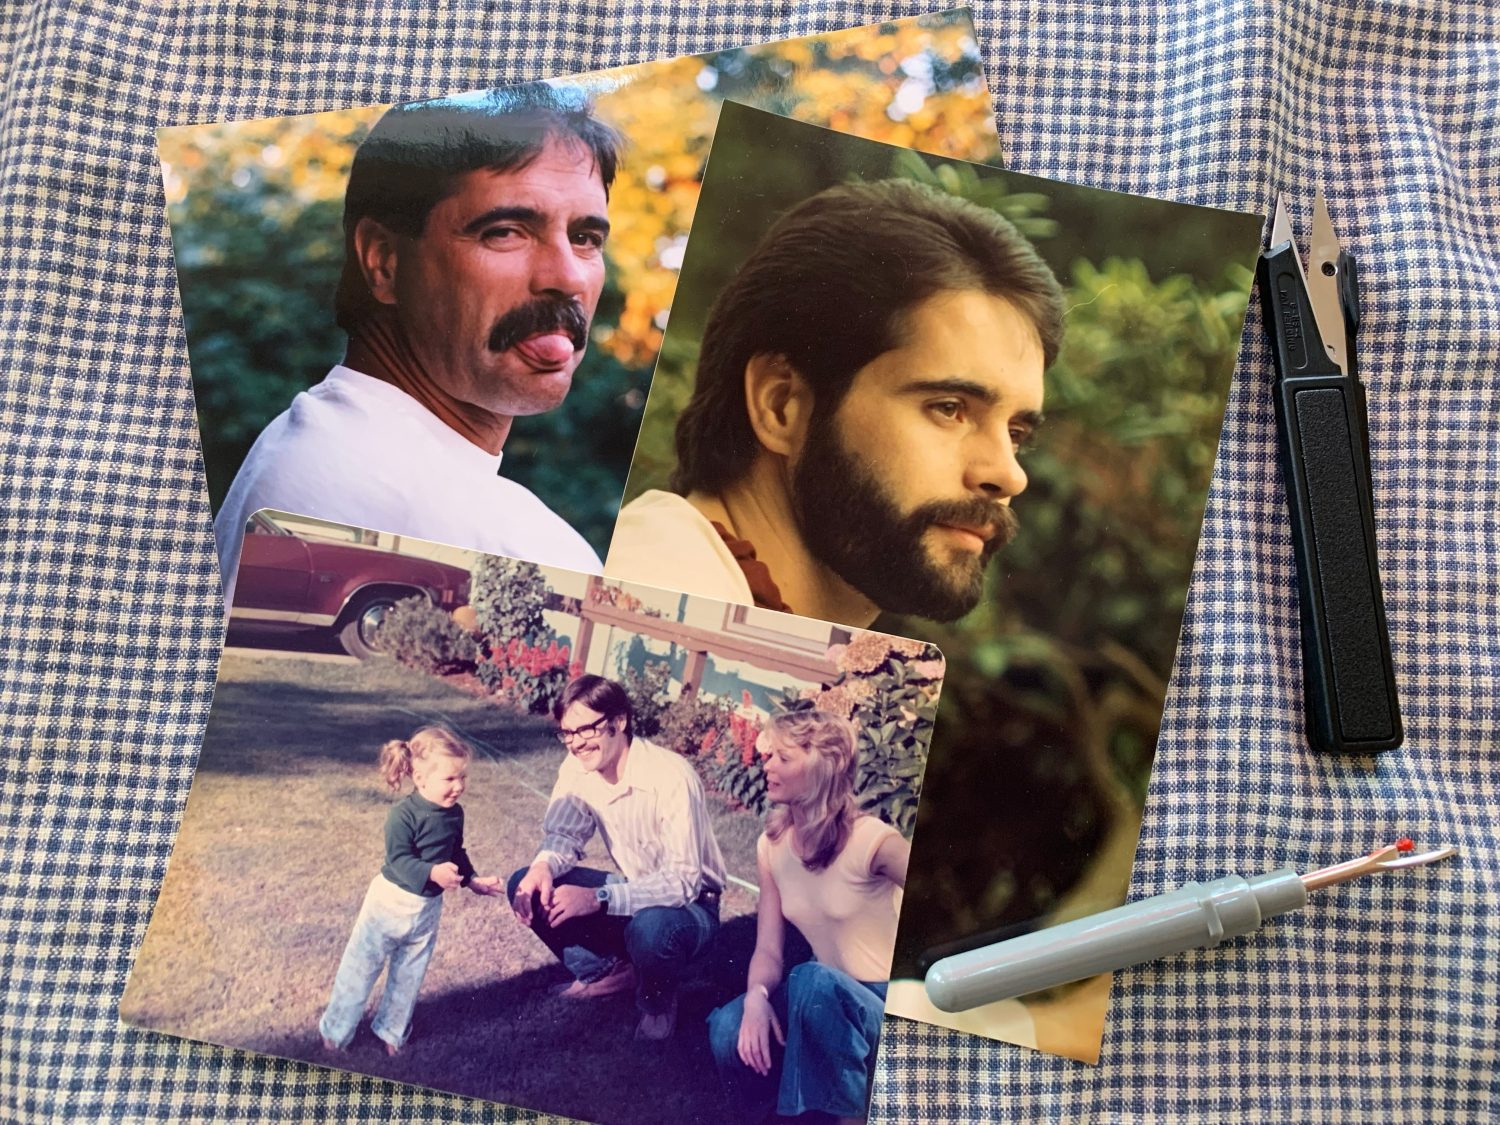 Photos of author's father: 1 of father a few weeks before death, 1 in the mid 1980s, 1 in 1975.